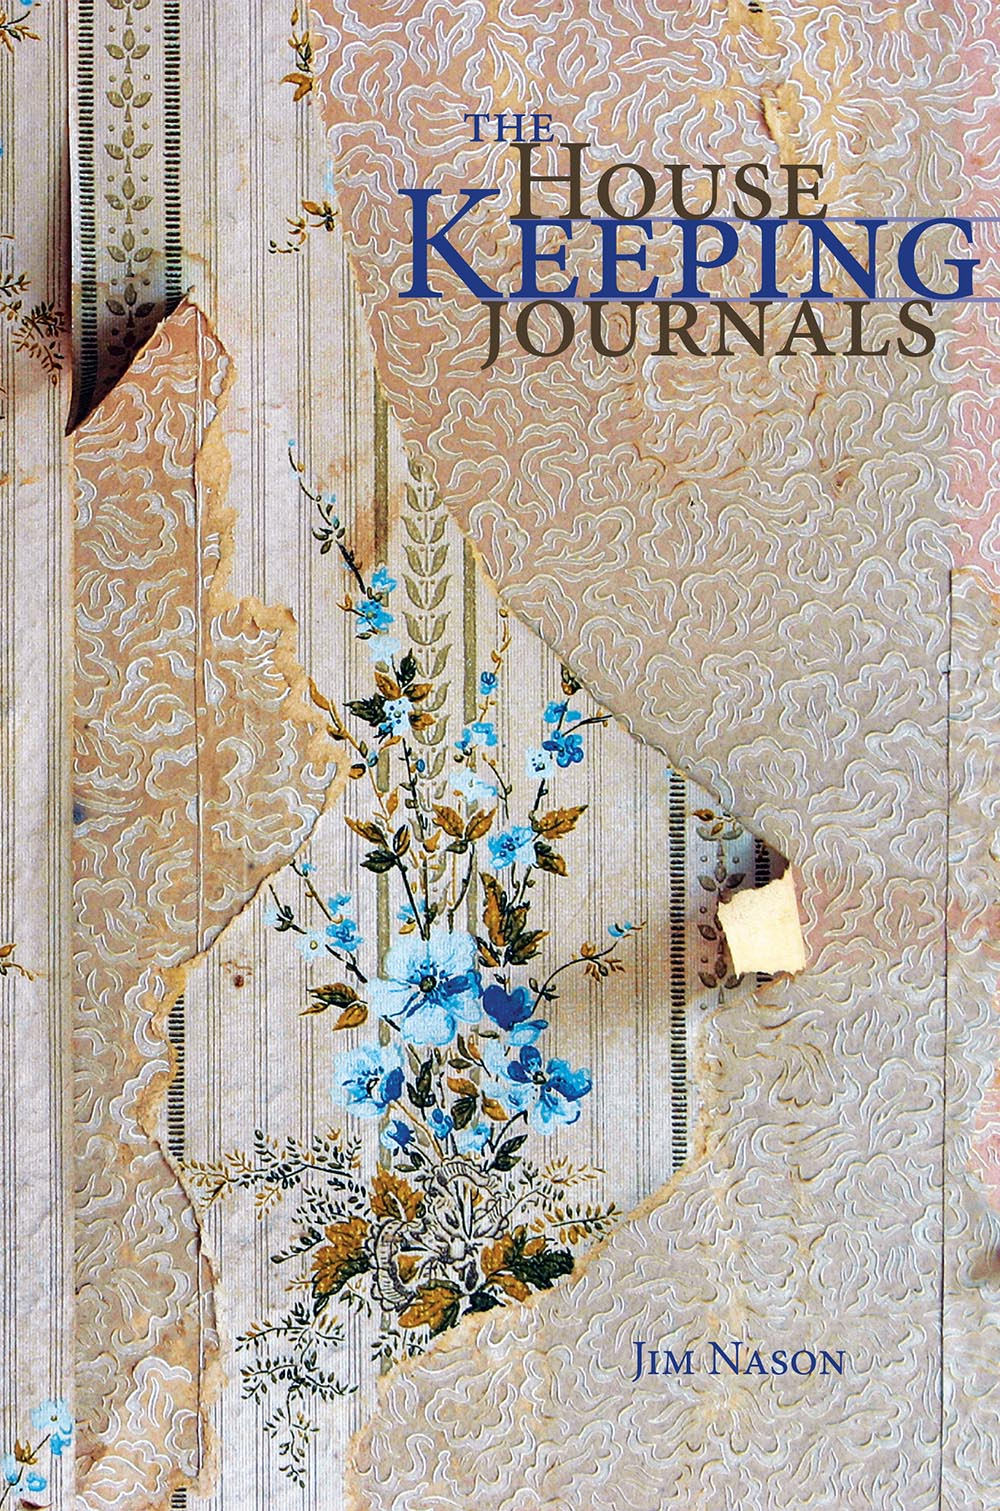 The Housekeeping Journals by Jim Nason